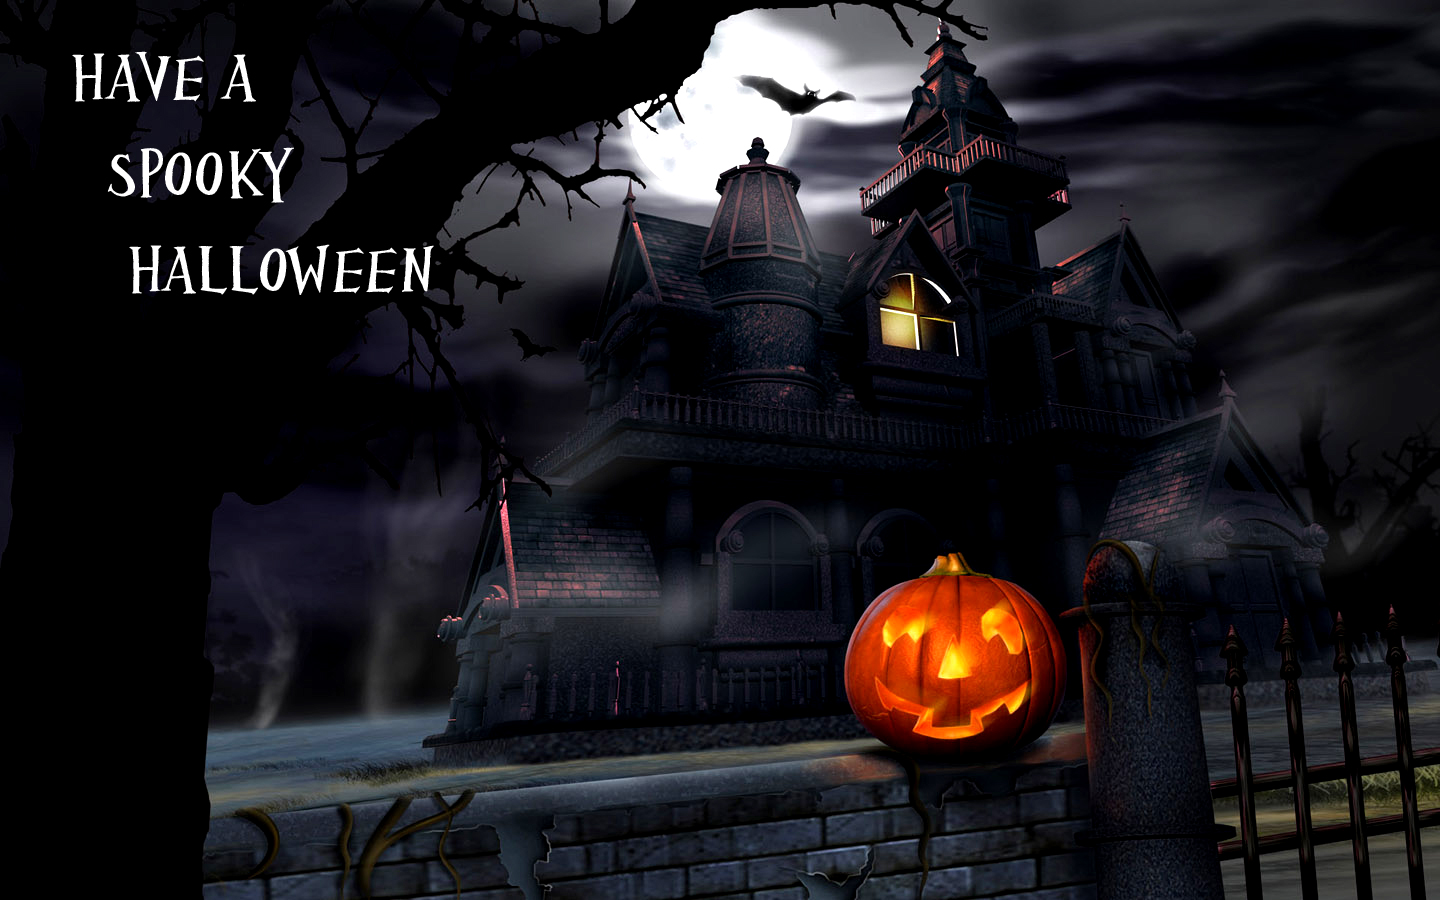 Freaky, Hot, Spooky, Sexy Halloween Greeting Cards Wallpapers – Travel Around...